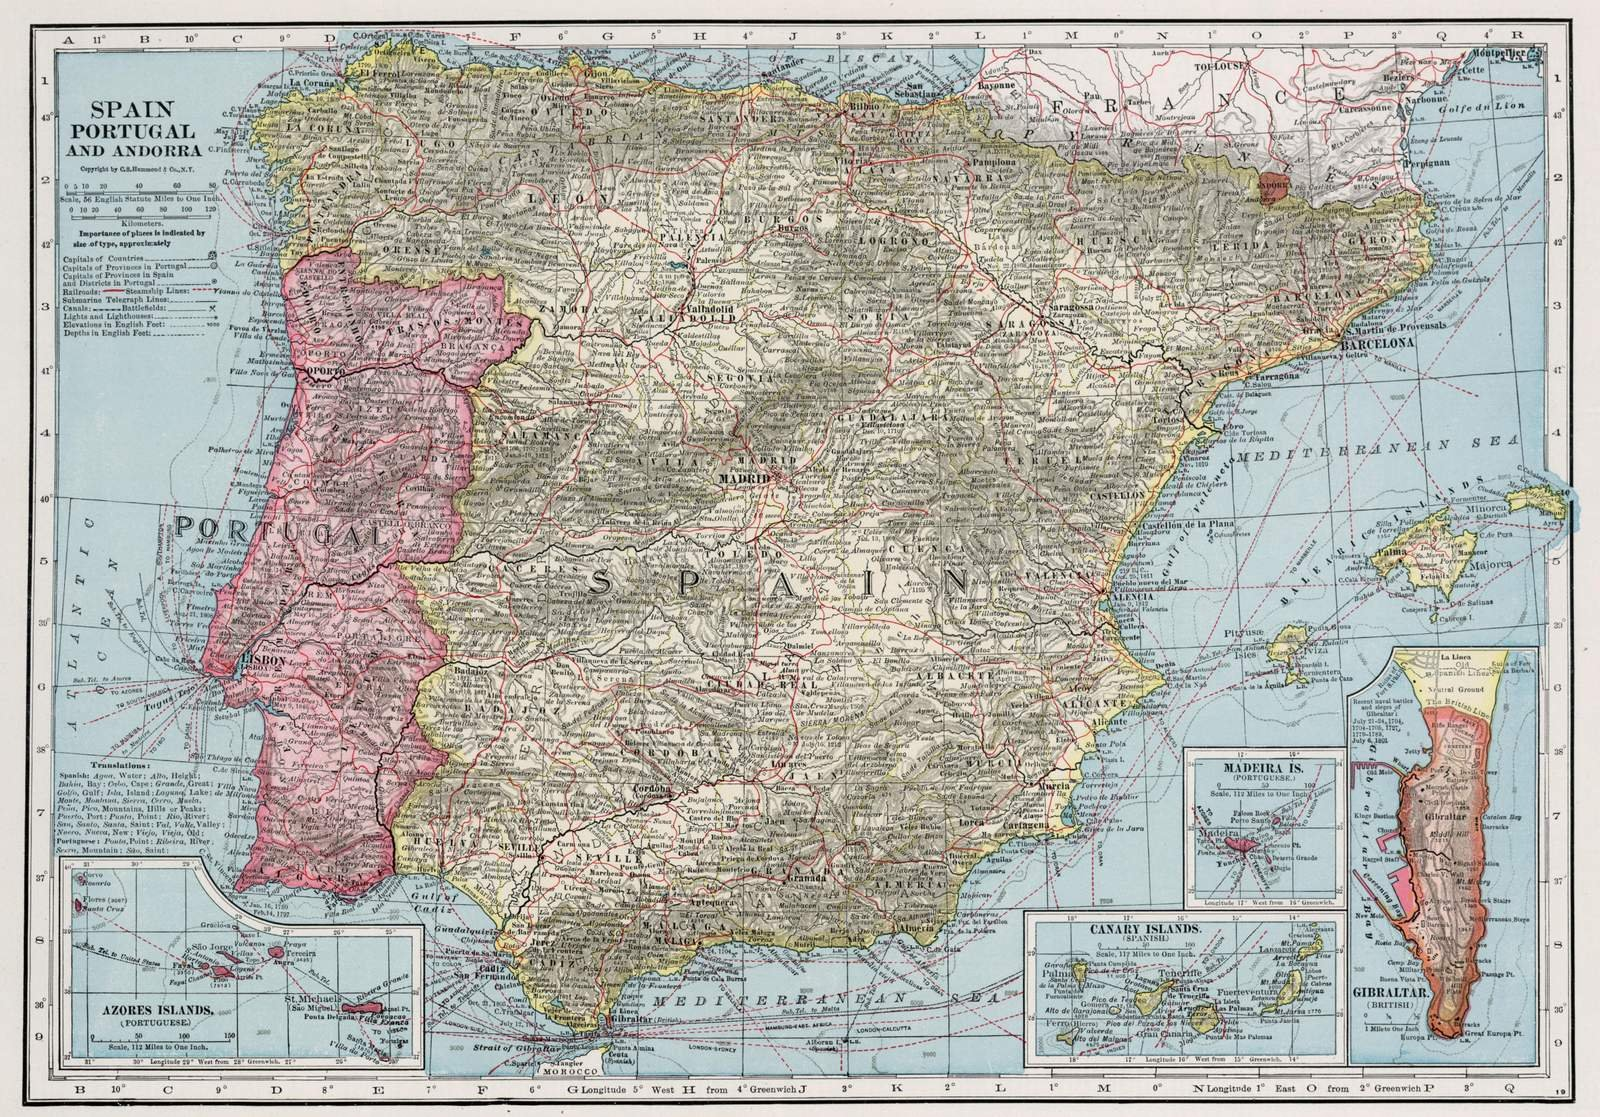 1948 World Map.Cheap World Map Spain And Portugal Find World Map Spain And